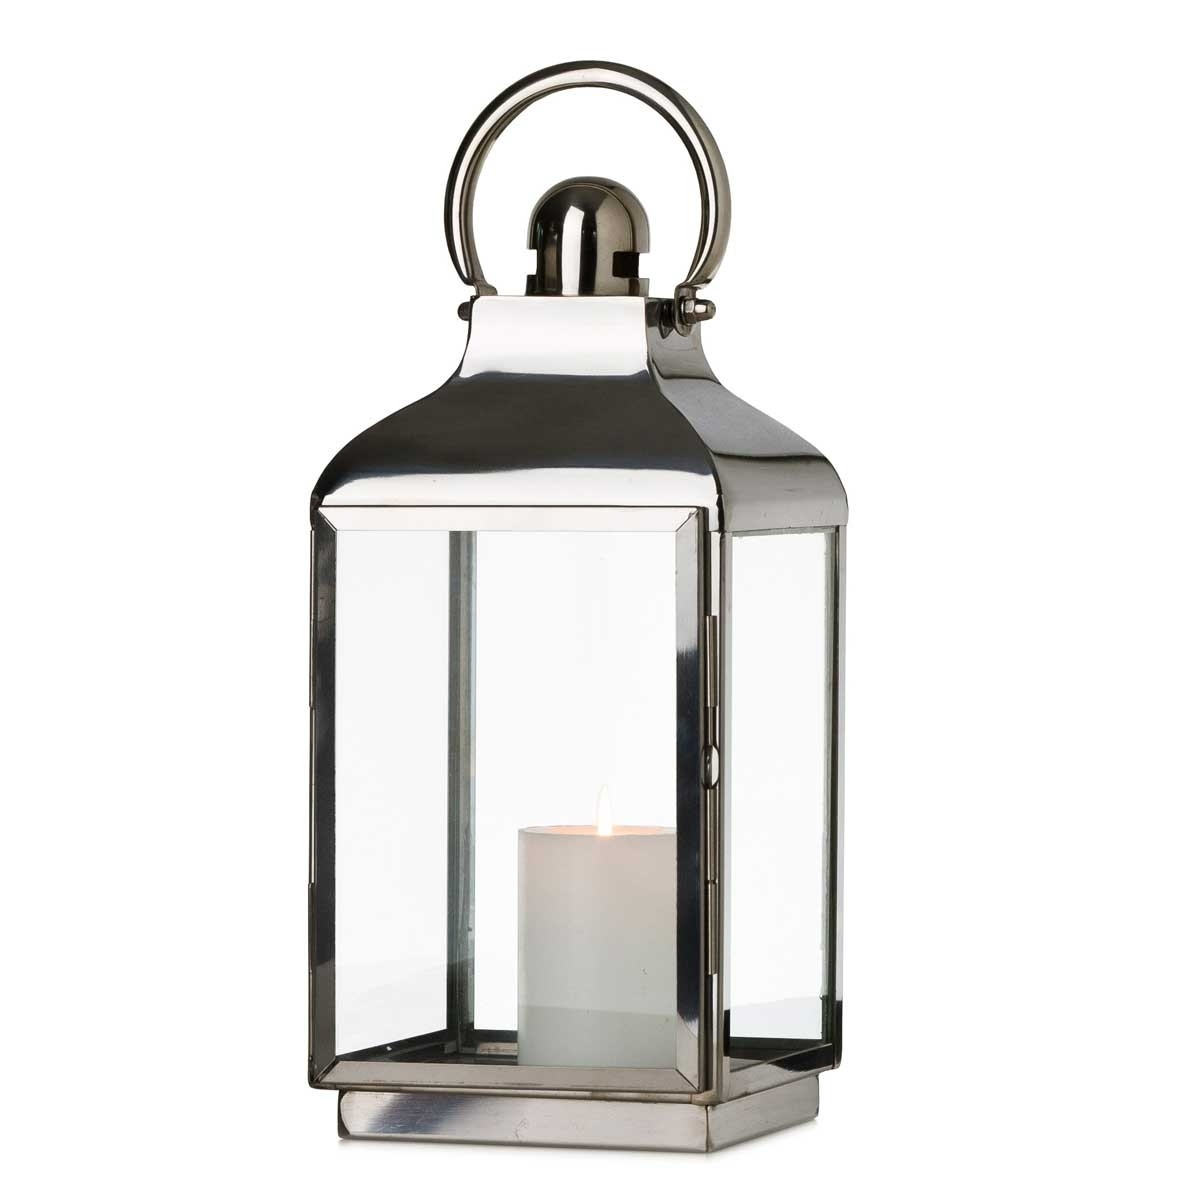 Square Base Lantern – Silver Within Newest Silver Outdoor Lanterns (View 14 of 20)